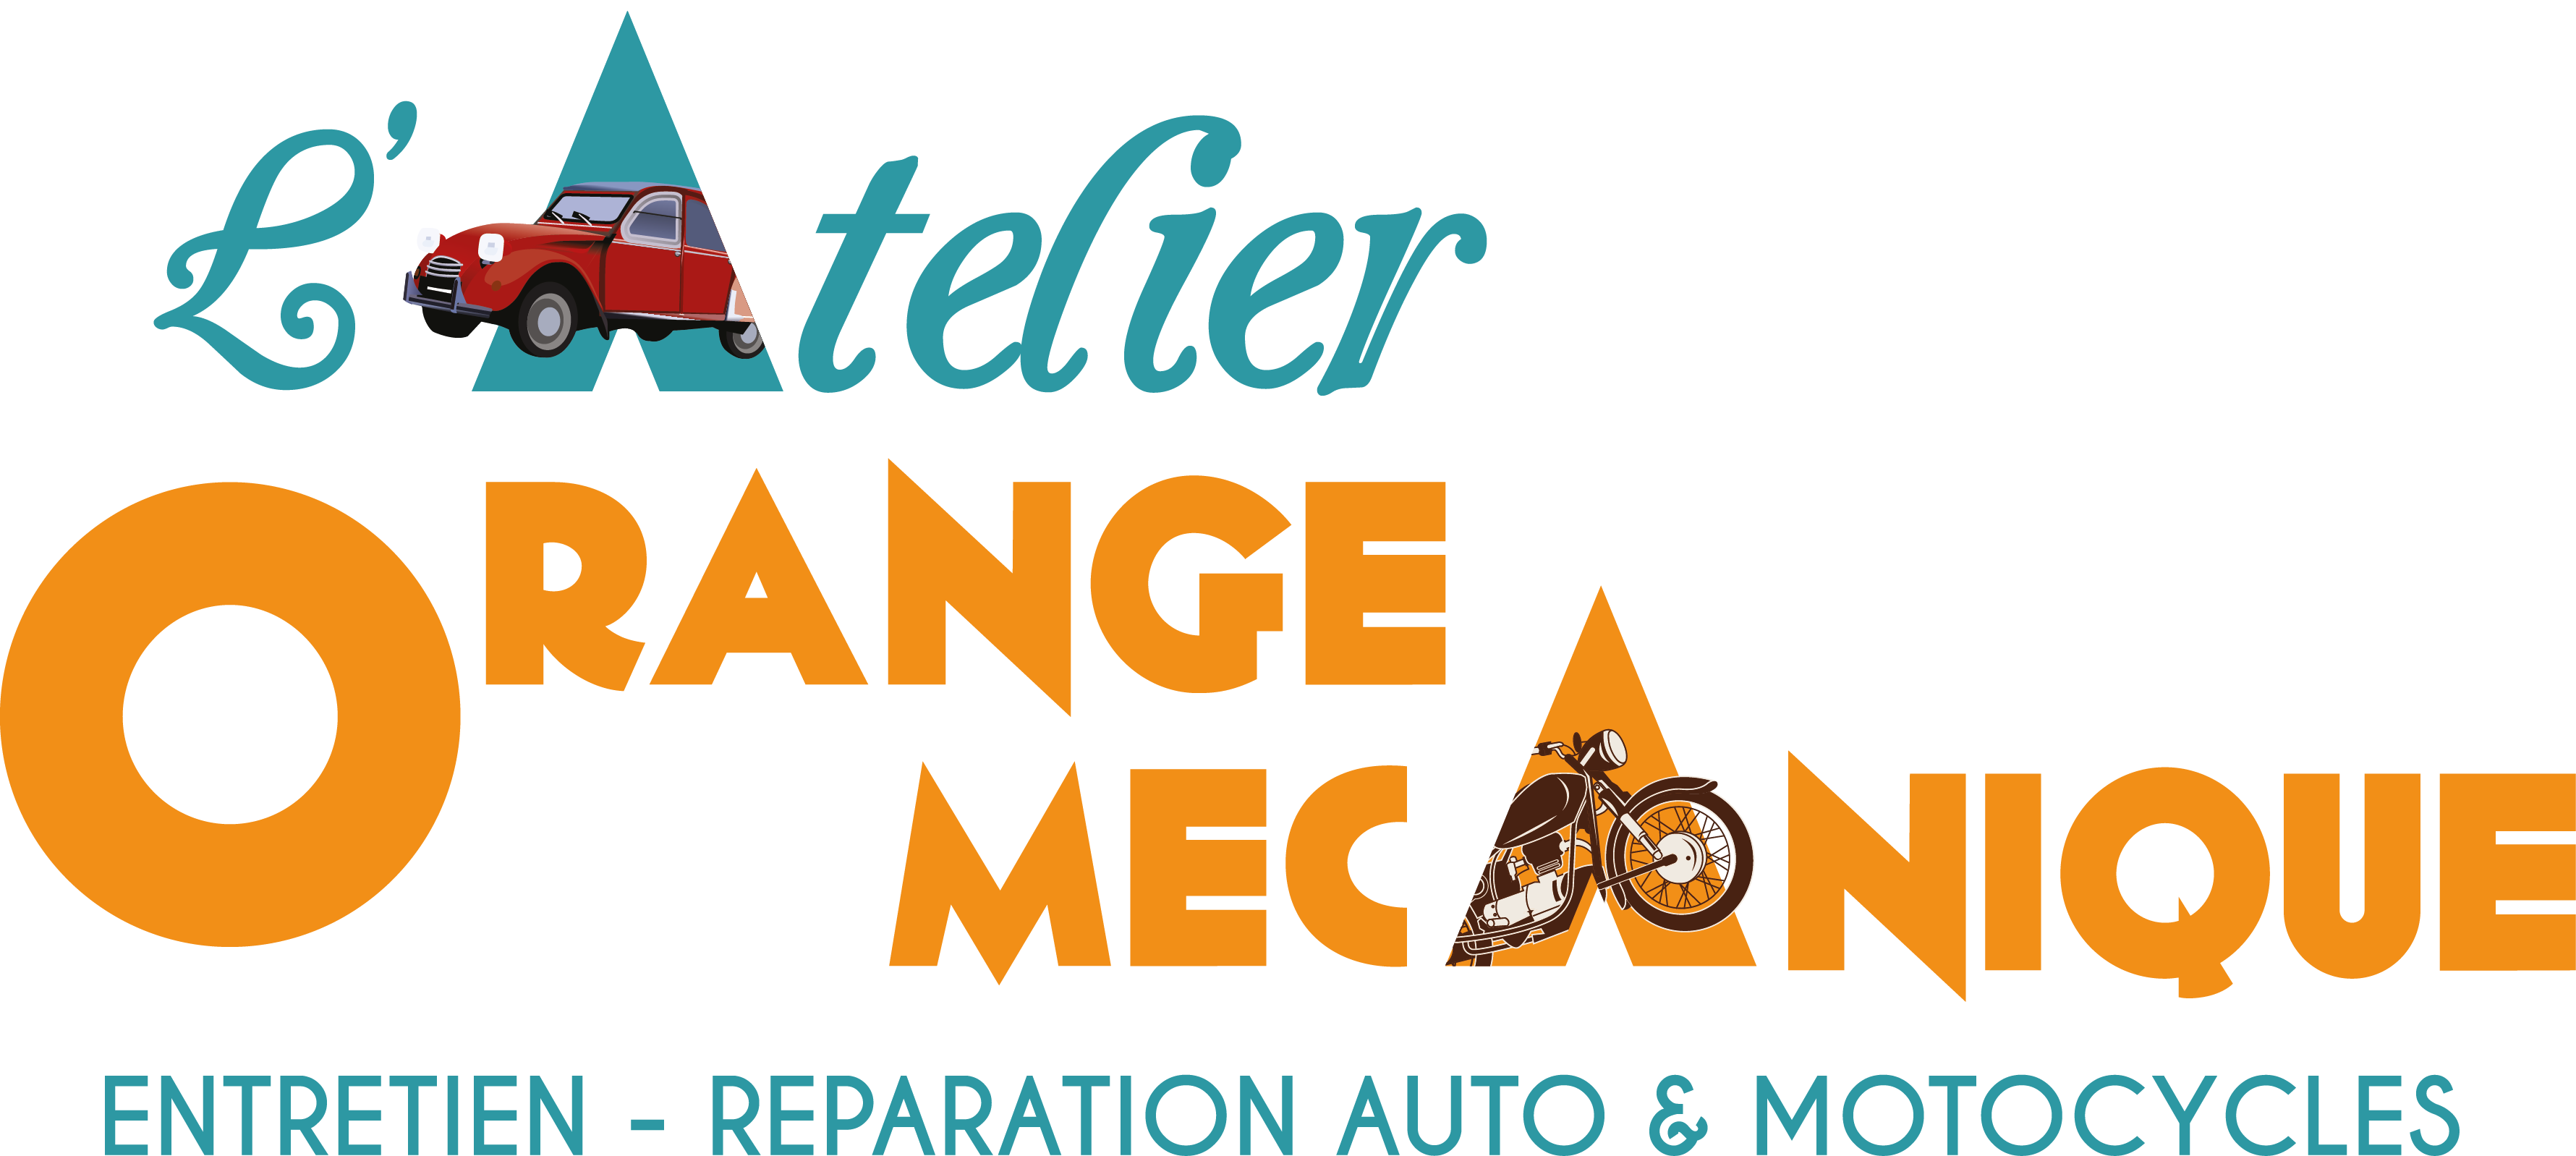 L'atelier orange mécanique Sticky Logo Retina